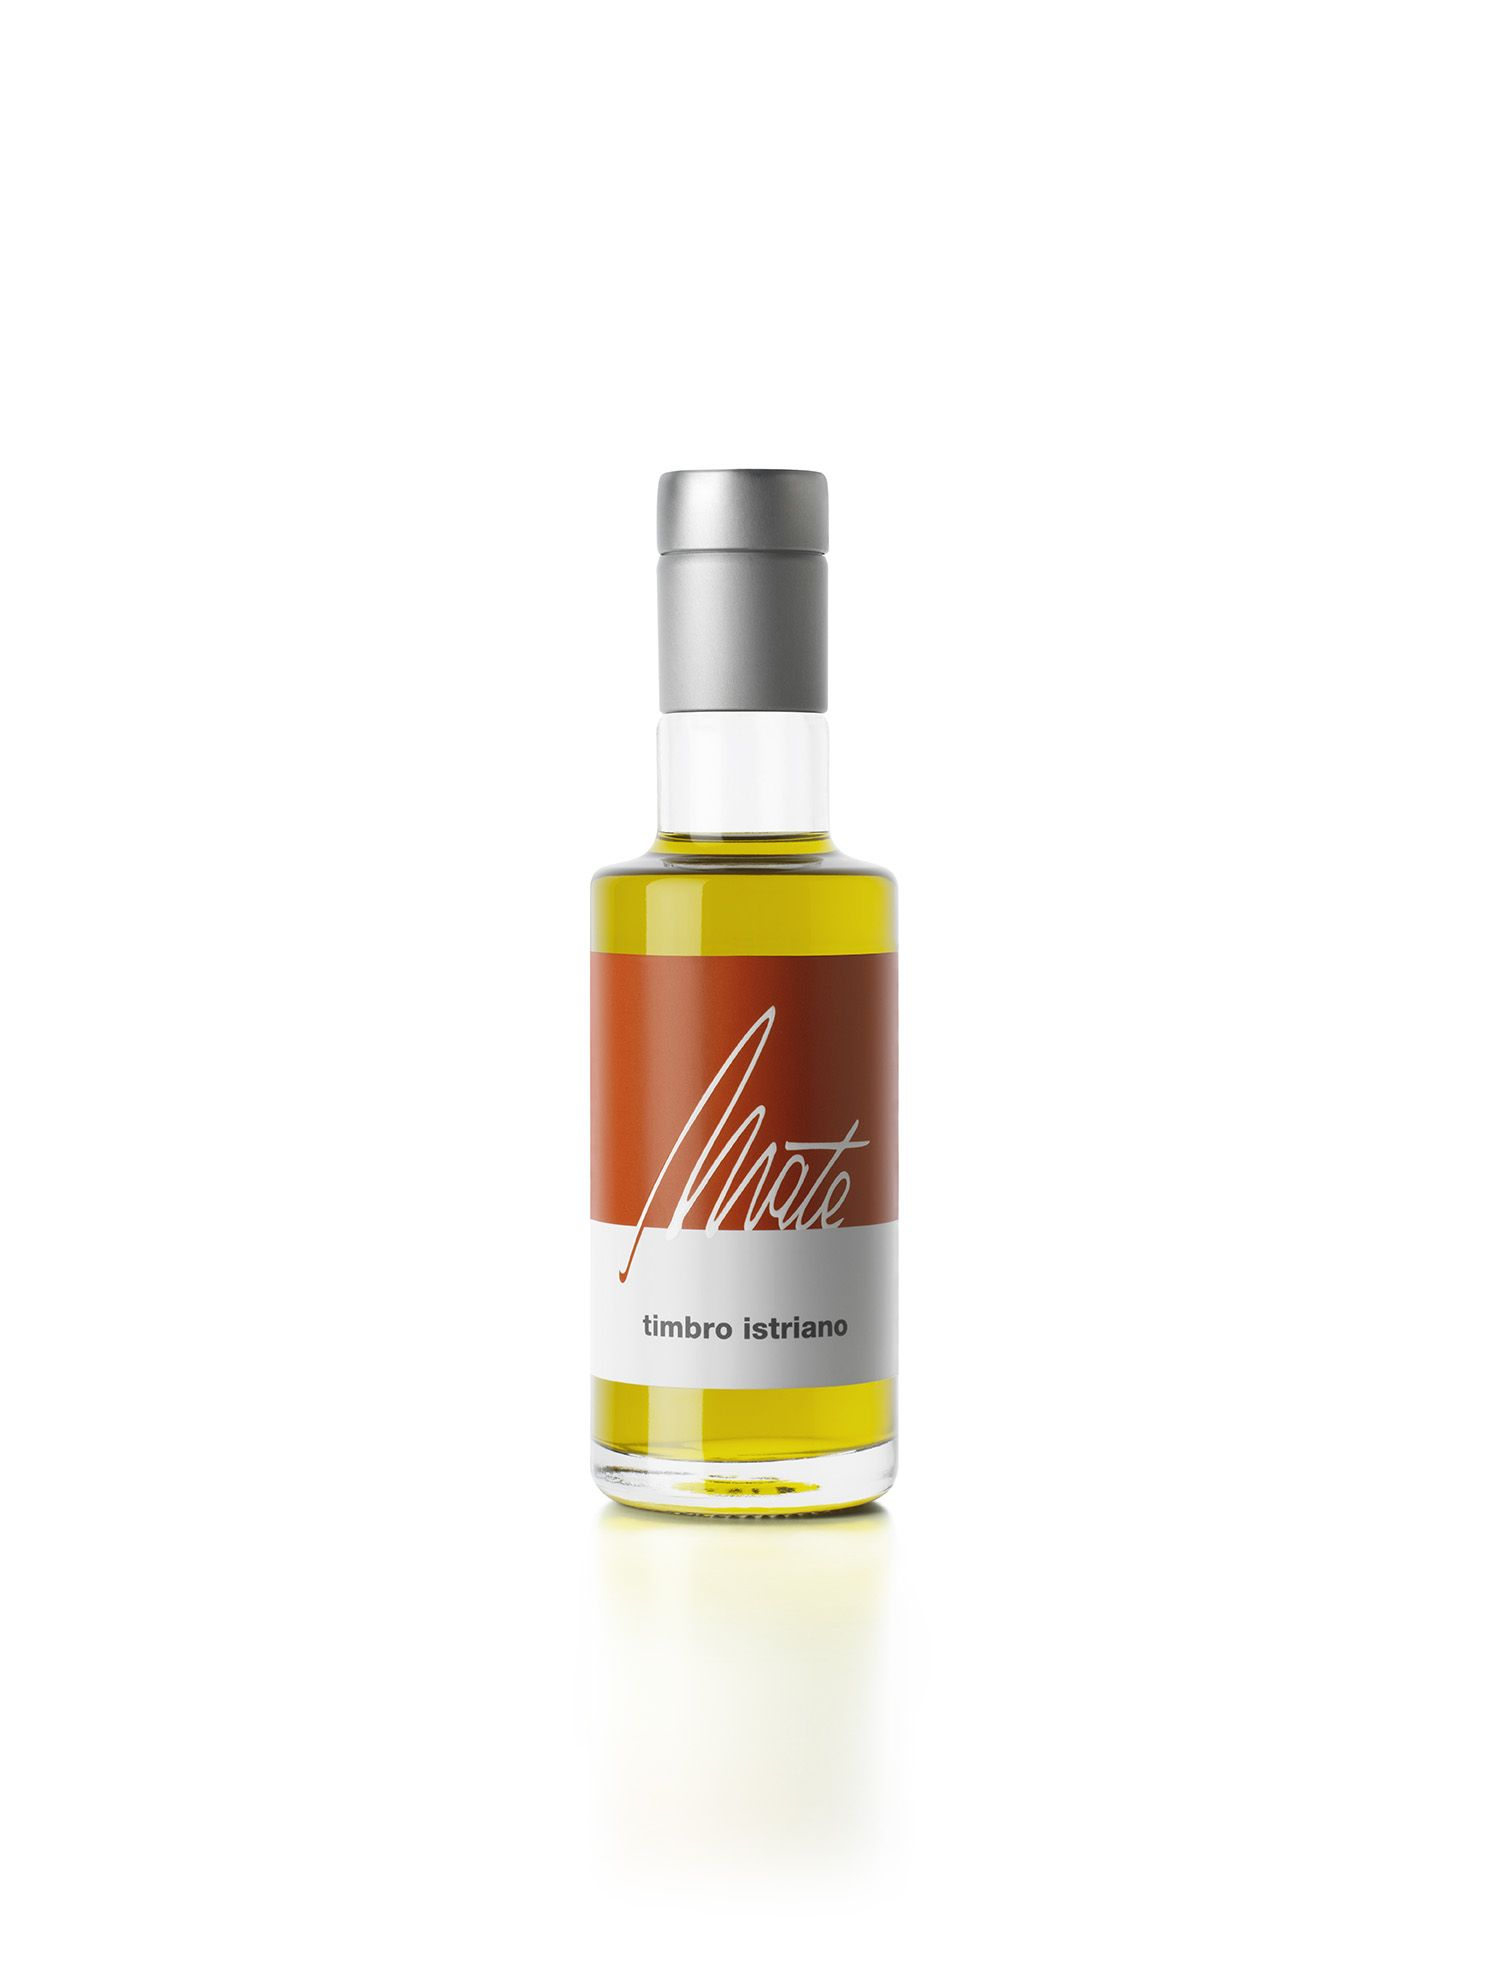 Beautiful Bottle Of Award Winning Olive Oil Timbro Istriano By Agrofin Mate Available At Www Delicije De Croatia Cabernet Sauvignon Weisser Truffel Rosewein